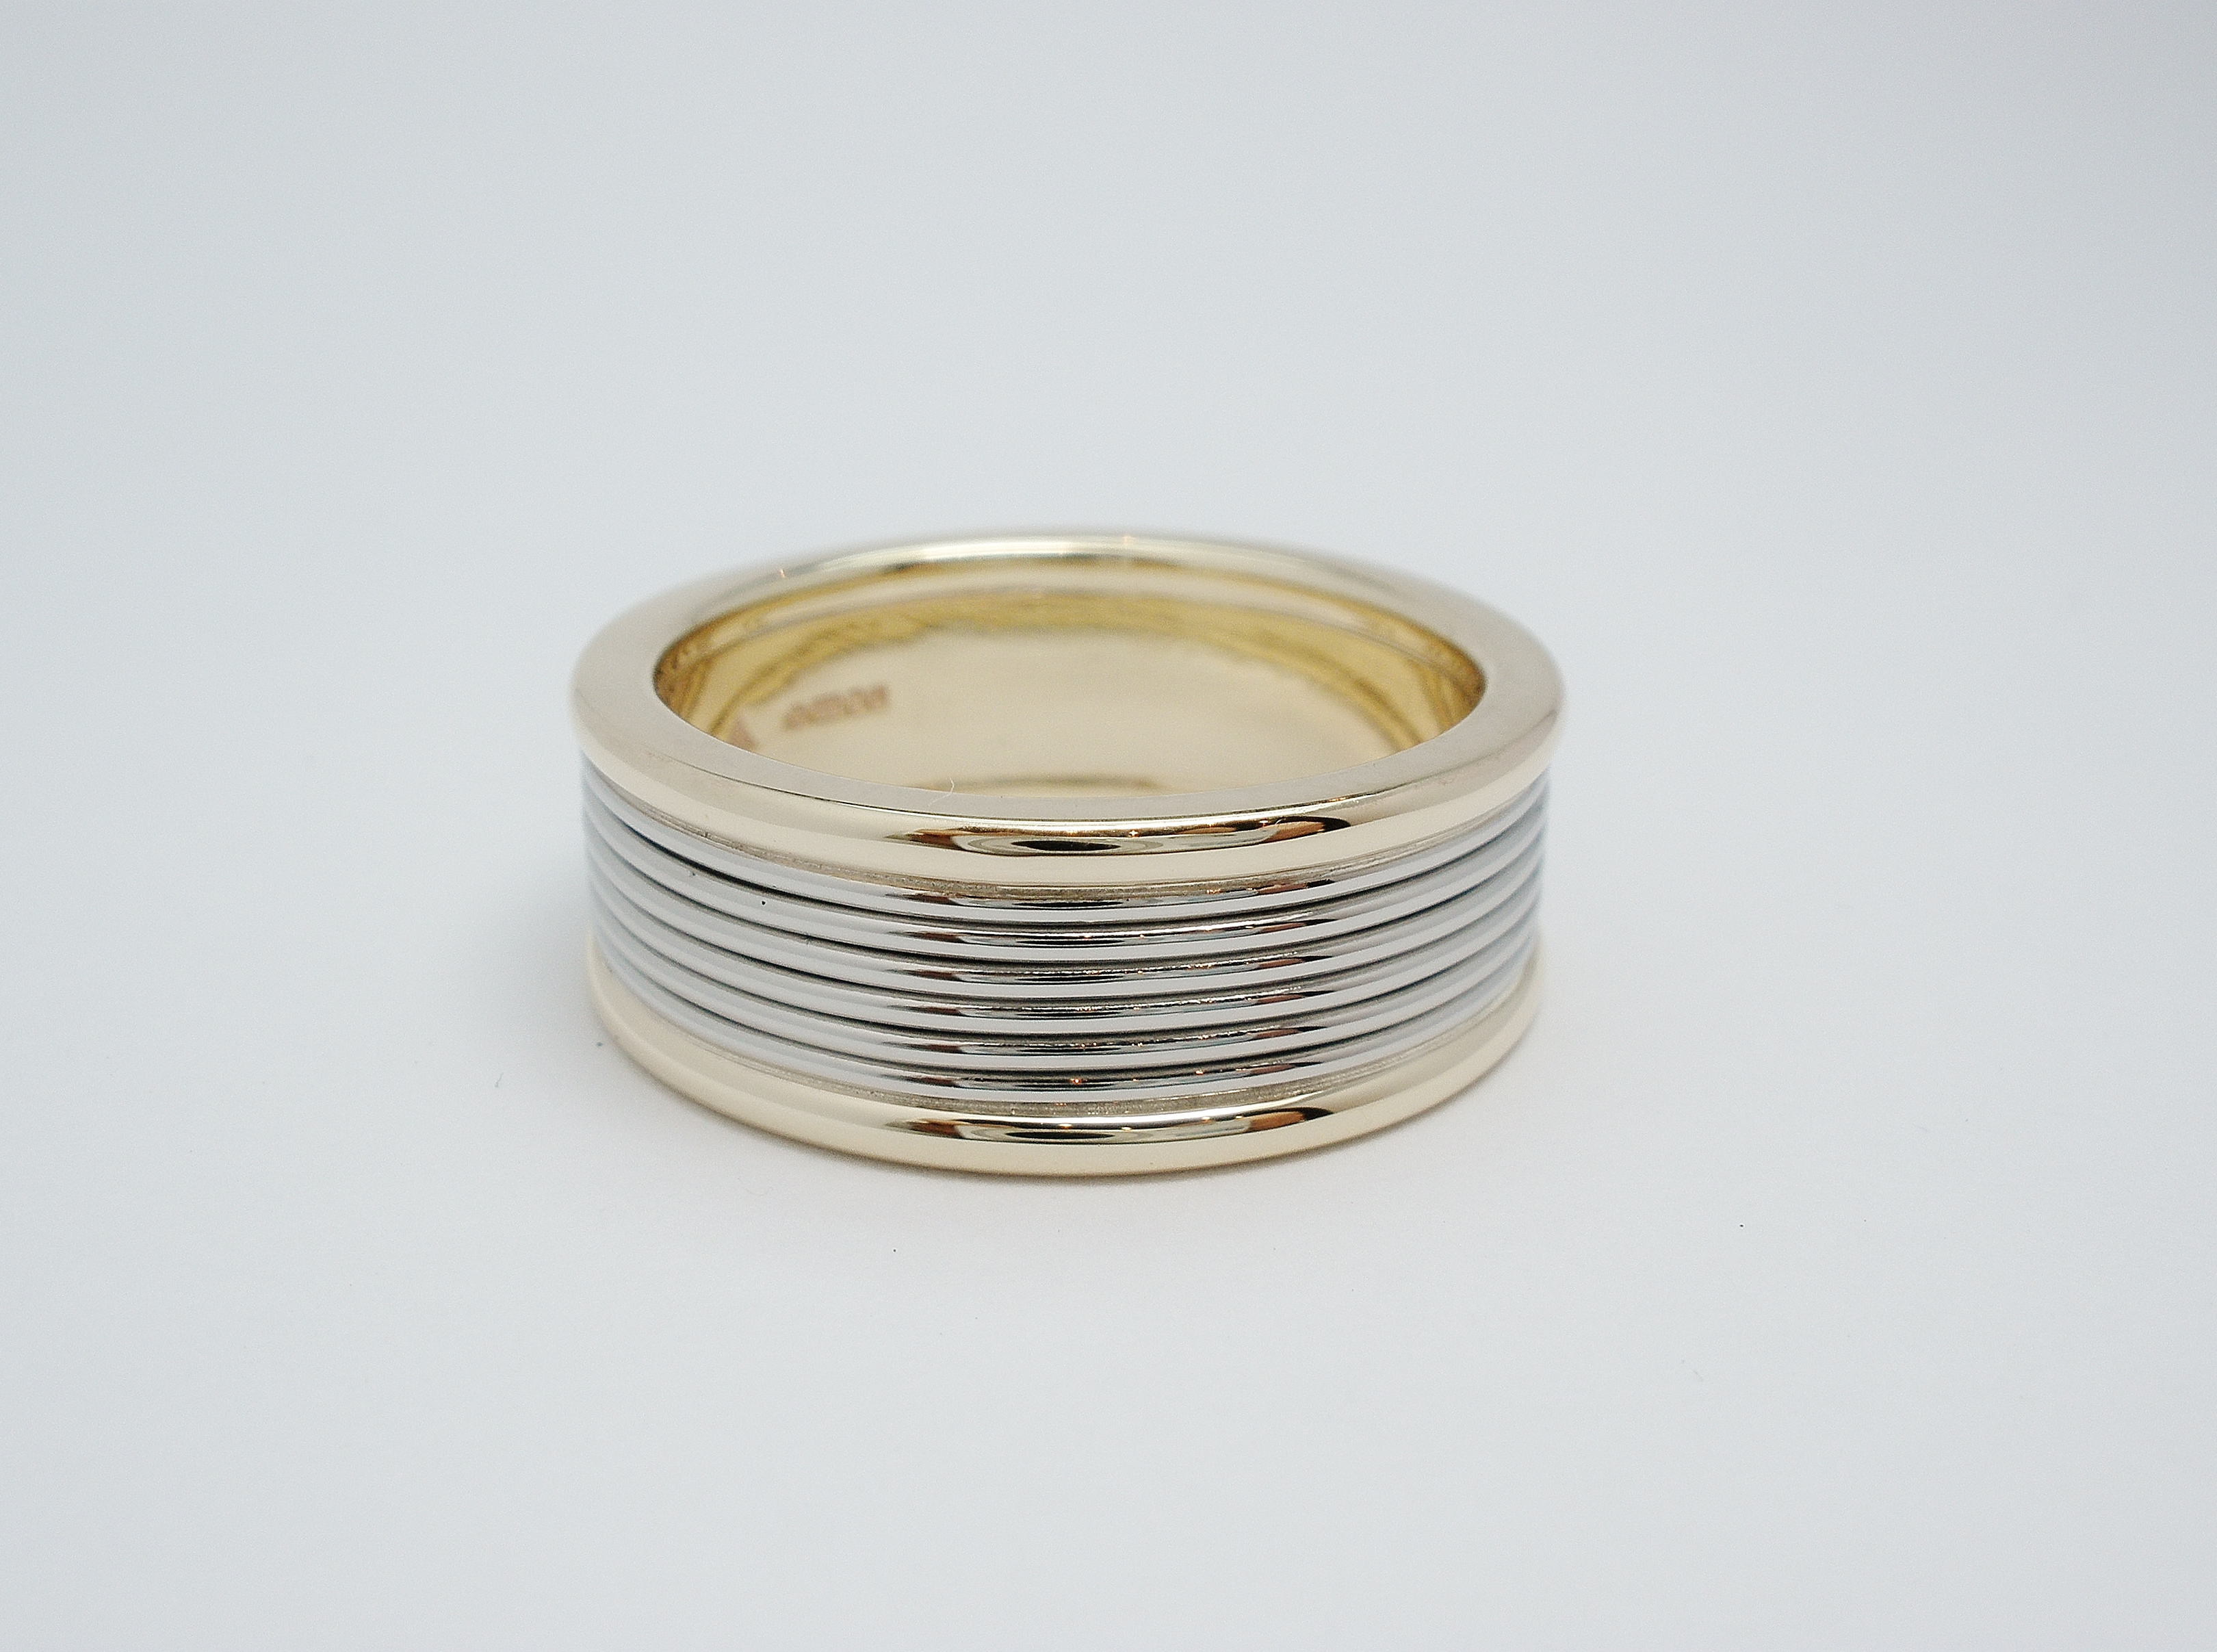 Platinum & 18ct. yellow gold gents 2 tone wedding ring with 18ct. yellow gold raised outer edge wires with a central platinum wire 'coil' effect.